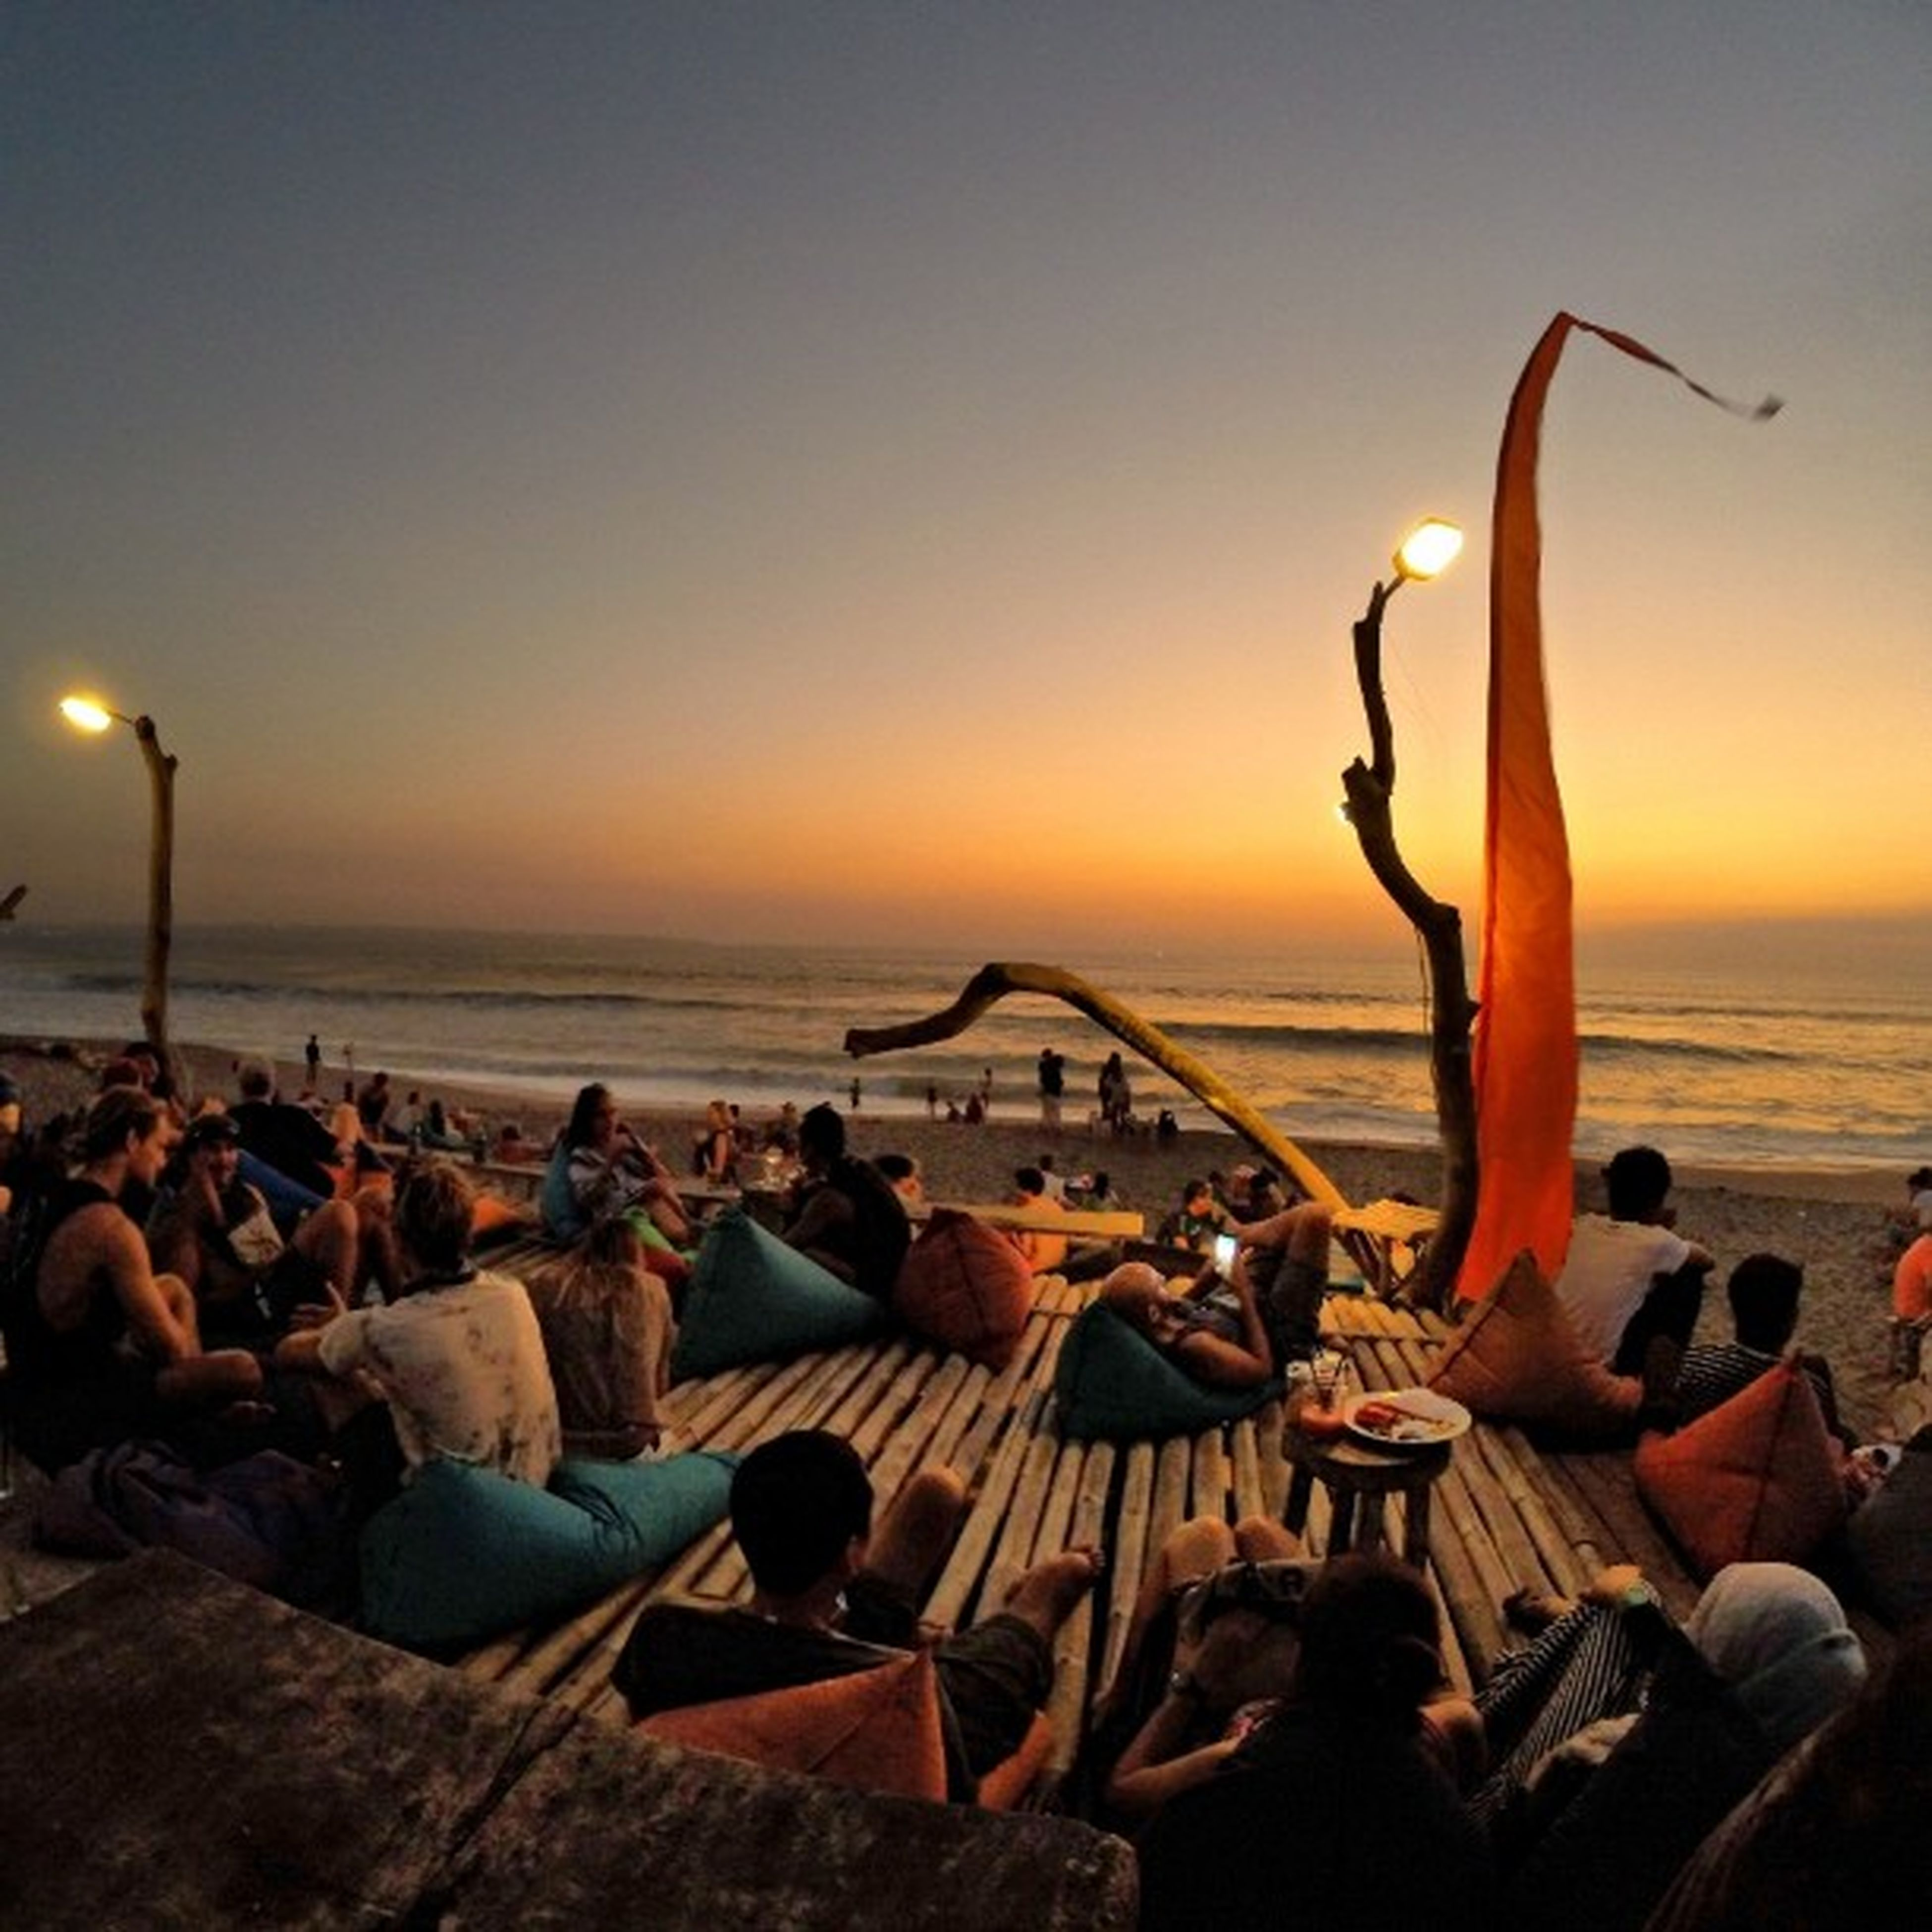 """Never waste any amount of time doing anything important when there is a sunset outside that you should be sitting under!"" C. Joybell C. Location : 707 Beachberm Sunset 707beachberm Travelphotography Findyourcoast Shareyourparadise BaliSunset Hellobali Goproid Goprodewata Shareyourparadise Indotravel"